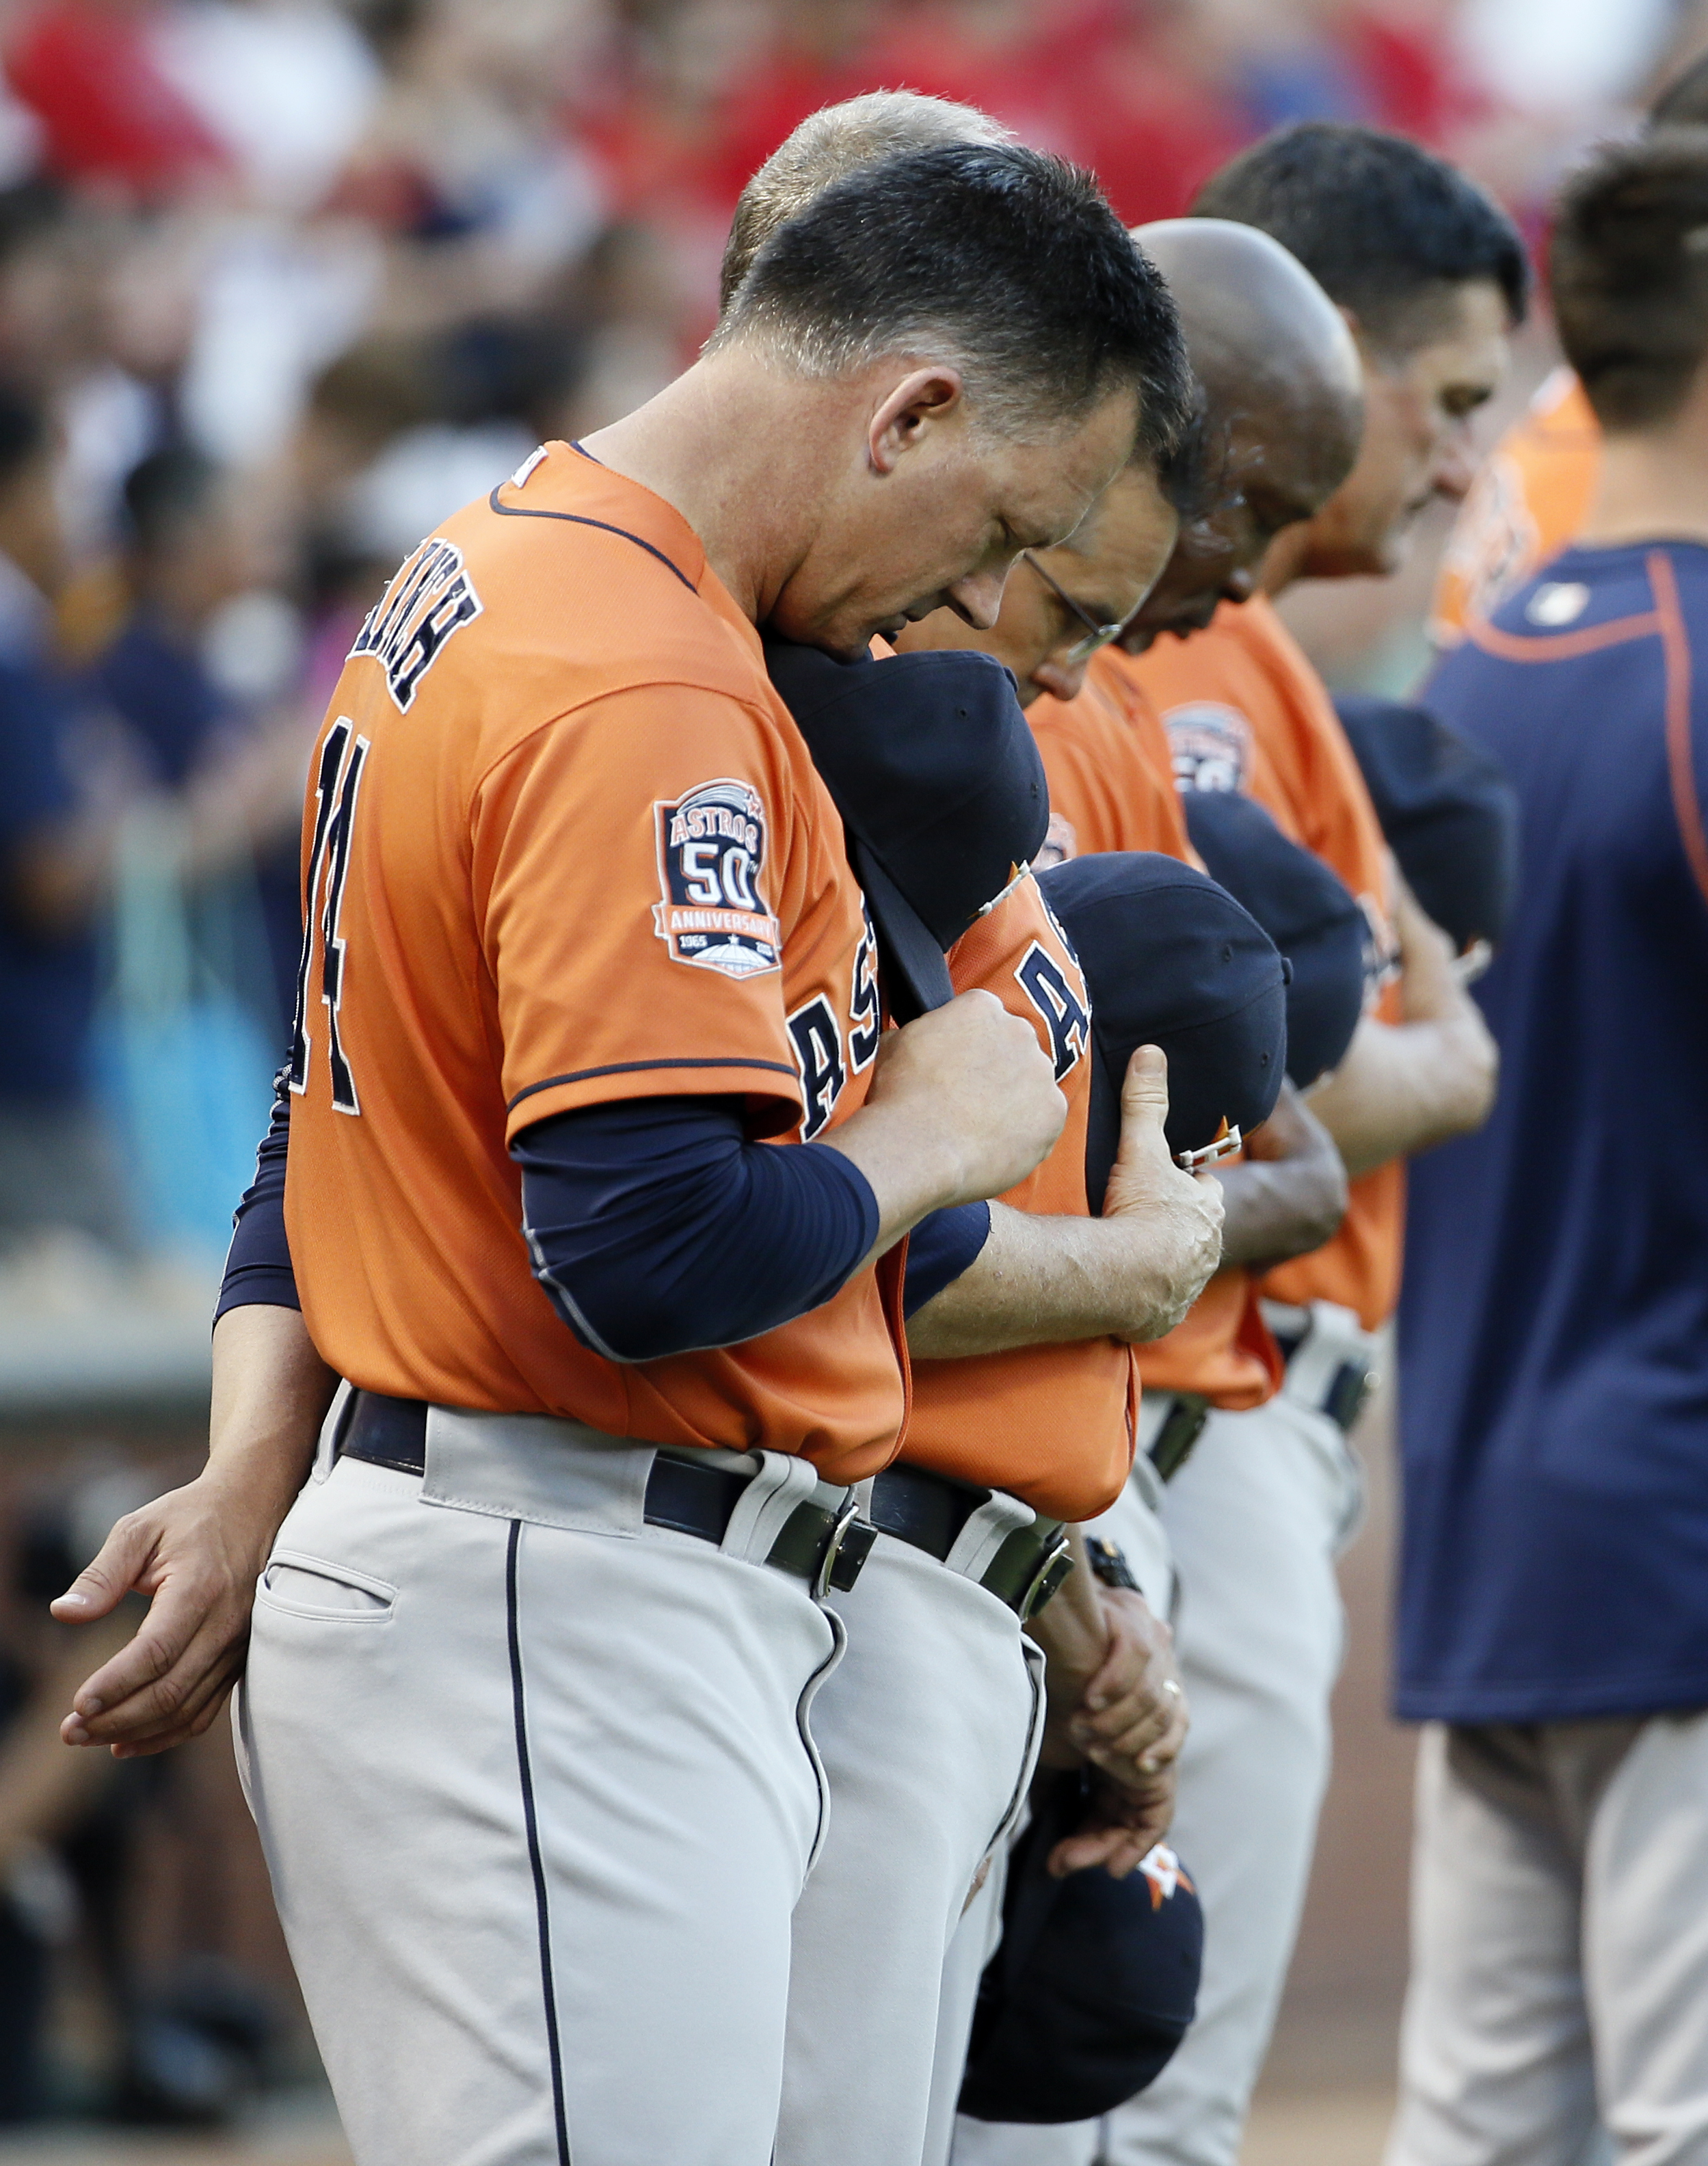 Houston Astros manager A.J. Hinch, front, and his staff bow their heads during a moment of silence in observance of the passing of baseball radio announcer Milo Hamilton, before the Astros' game against the Texas Rangers on Thursday, Sept. 17, 2015, in Ar